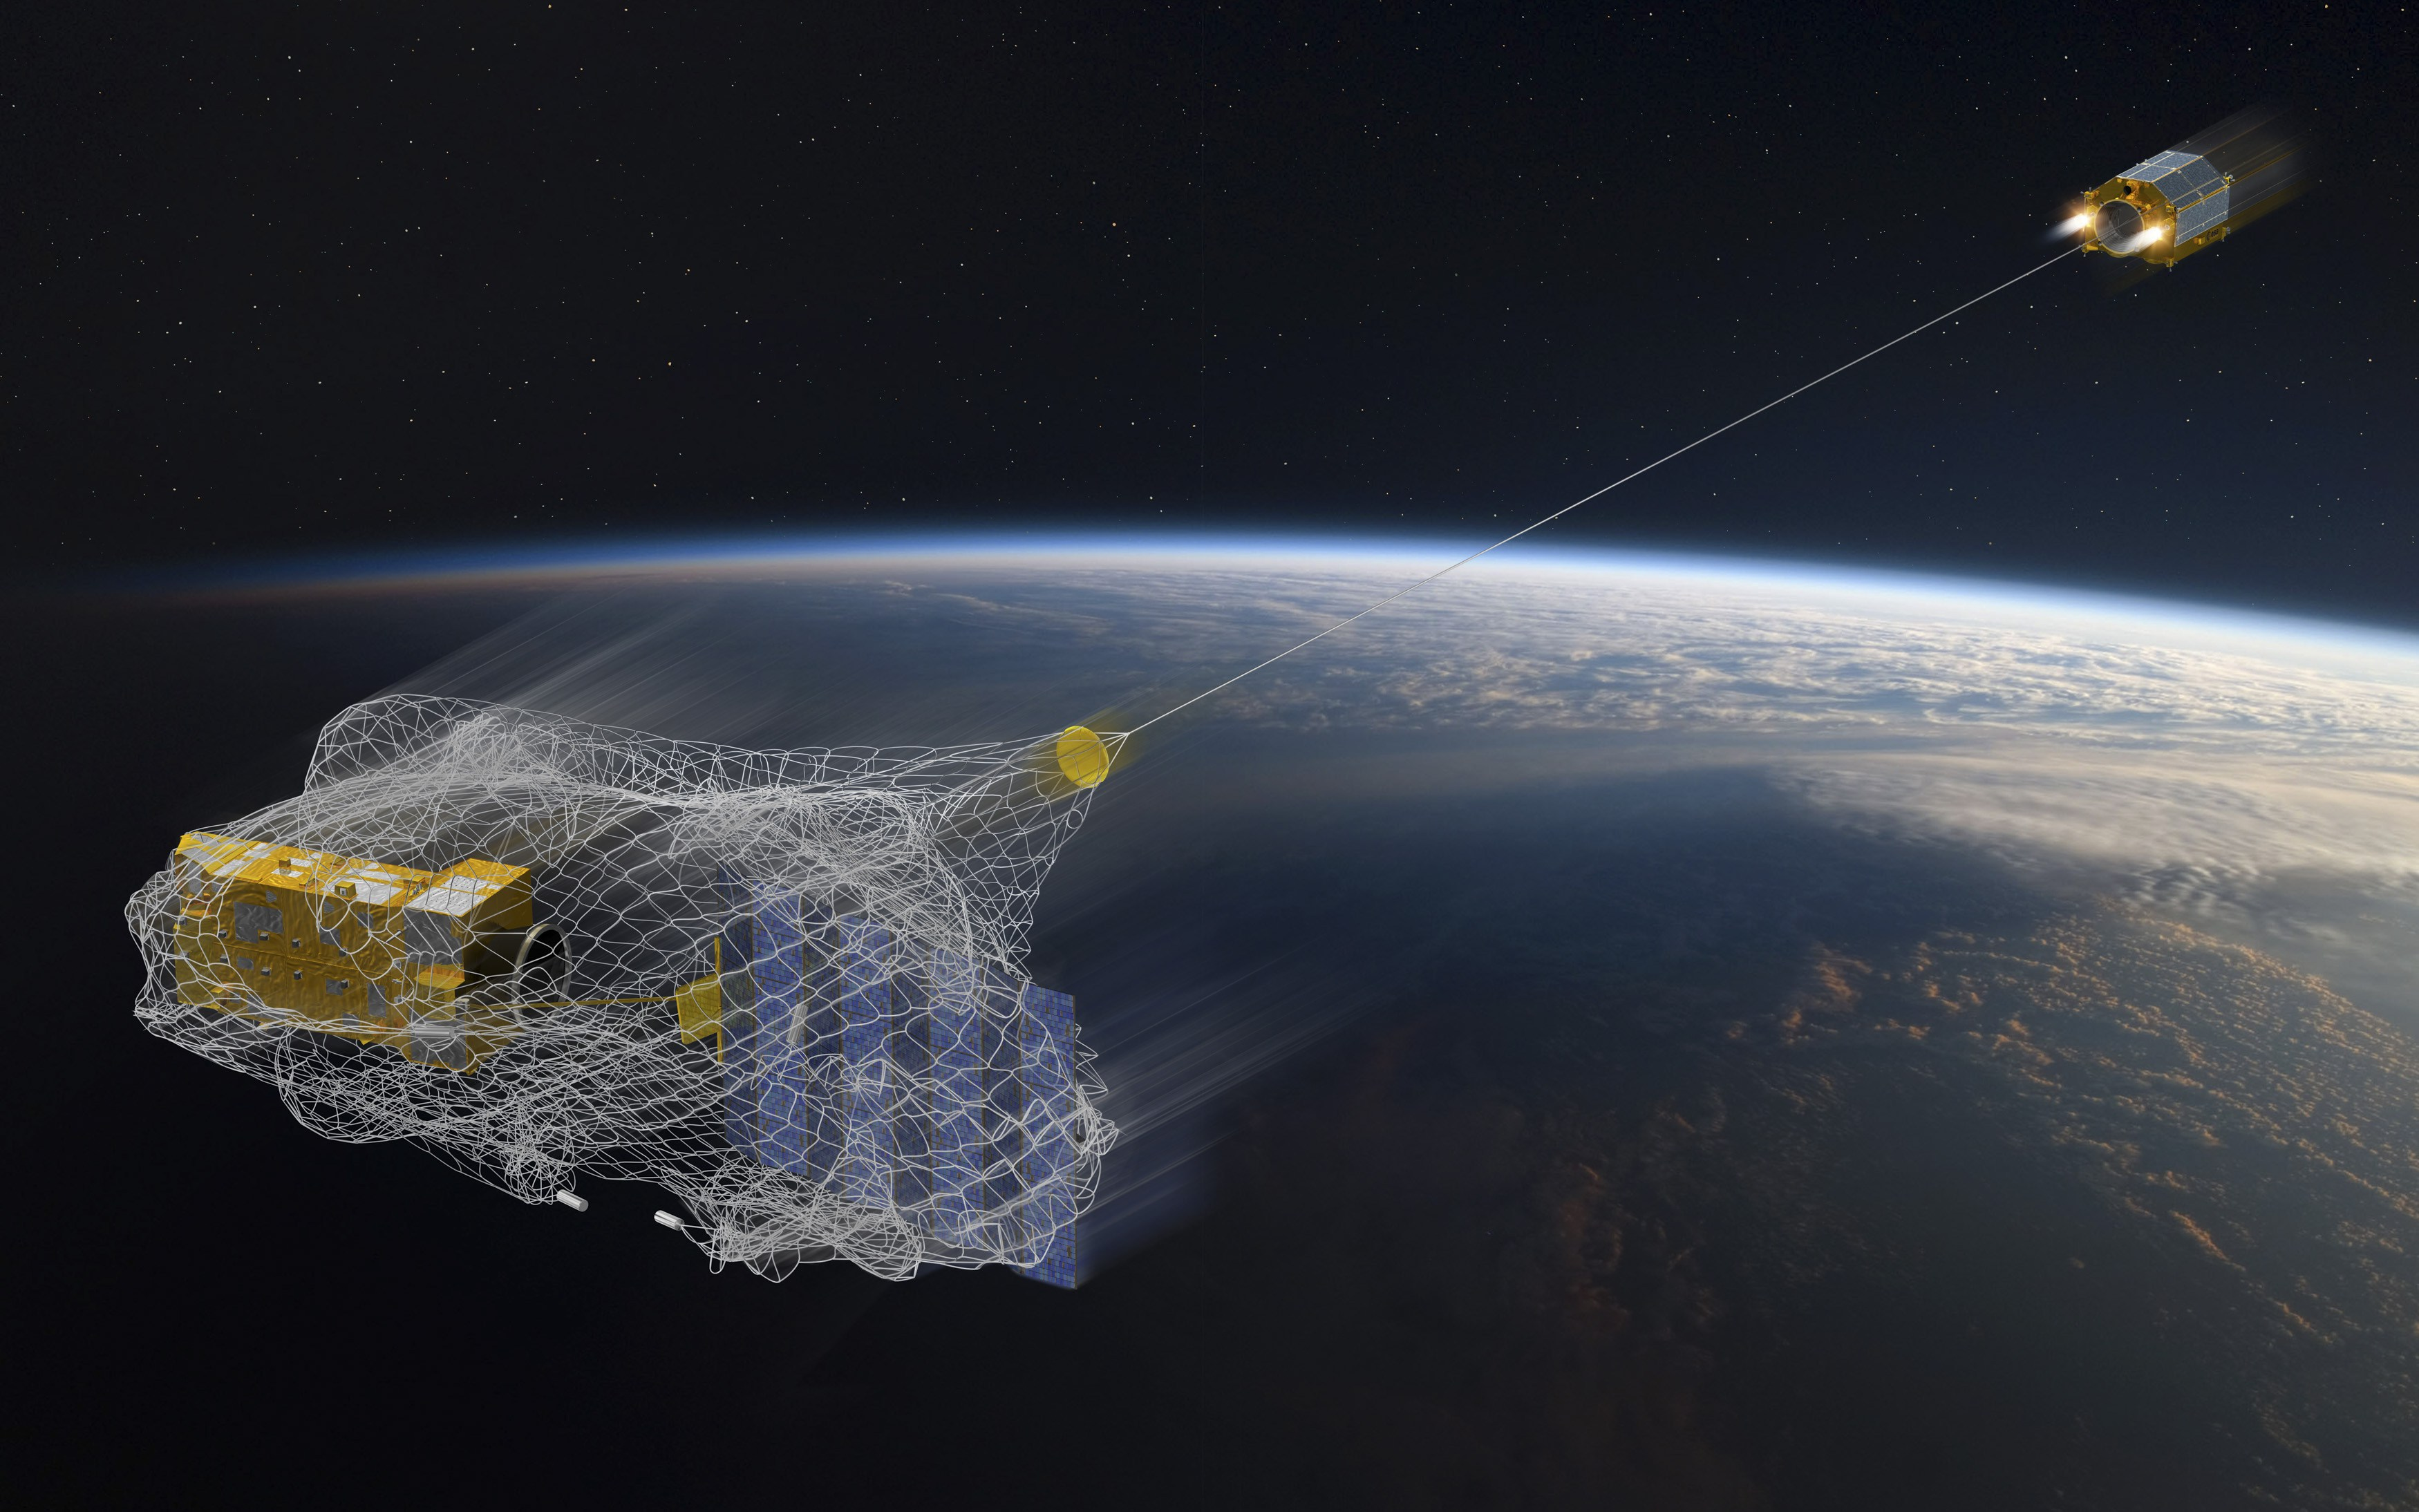 With the ISS launched a satellite, hunting for space debris